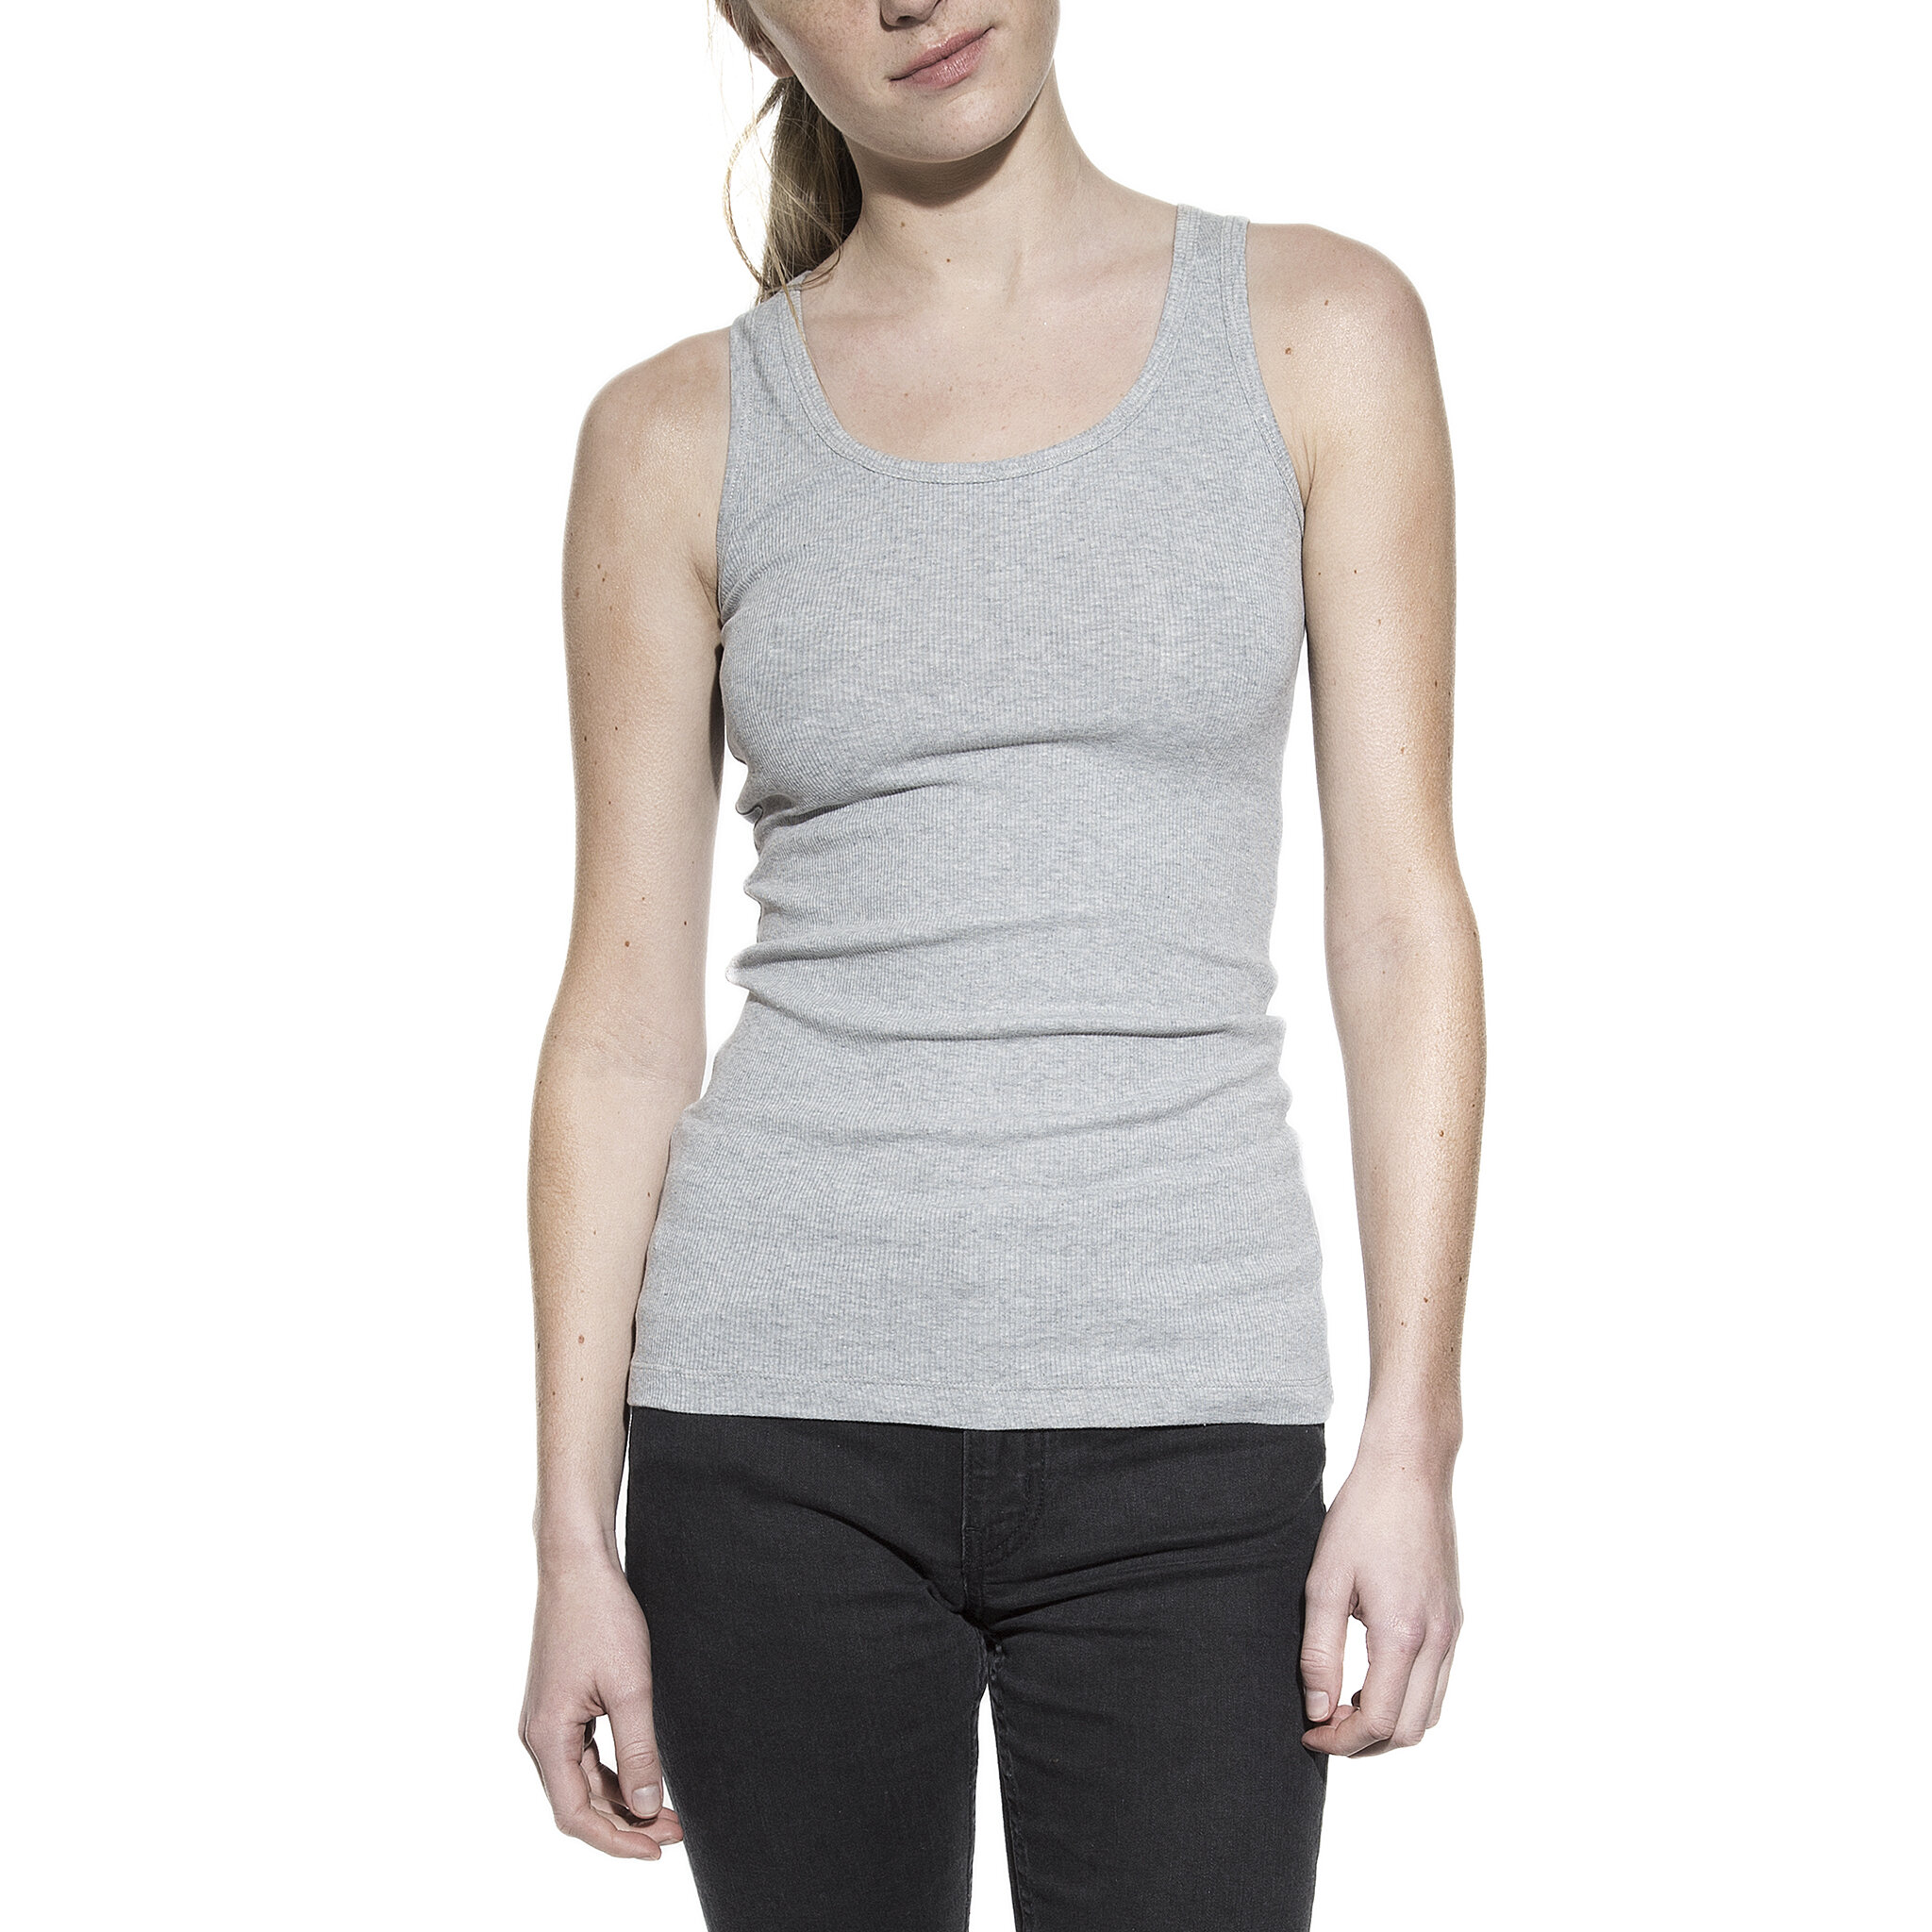 605103_Woman_Tank_ribbed_grey-melange_1